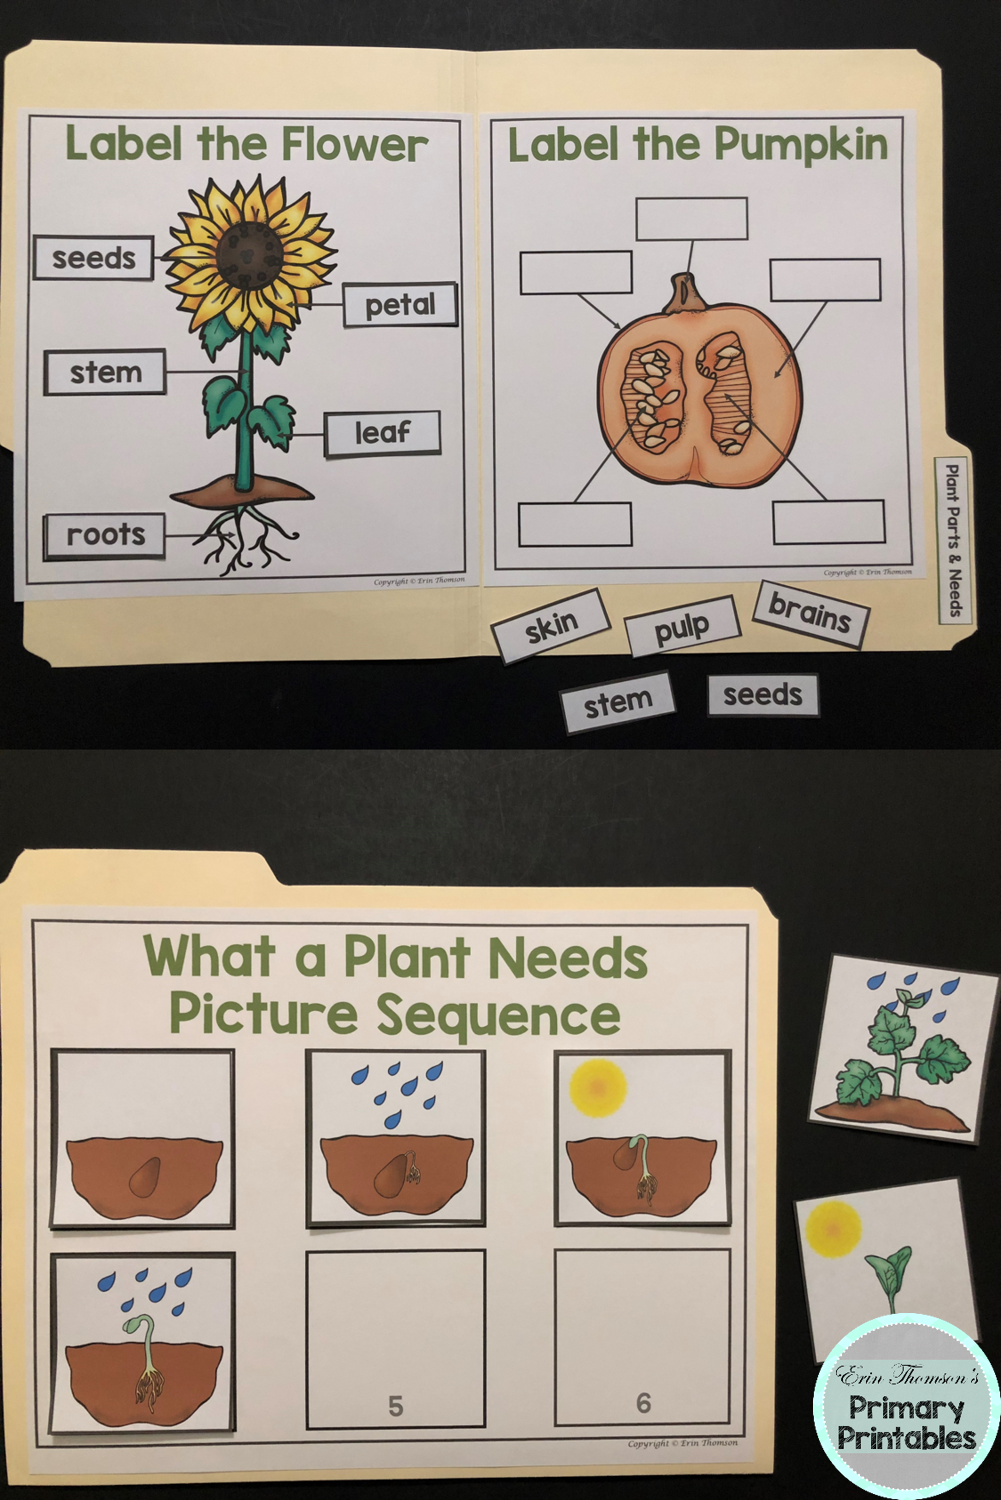 Science File Folder Activity Plant Parts And Needs Parts Of A Flower And Pumpkin File Folder Activities Parts Of A Plant Fun Worksheets For Kids [ 1500 x 1001 Pixel ]